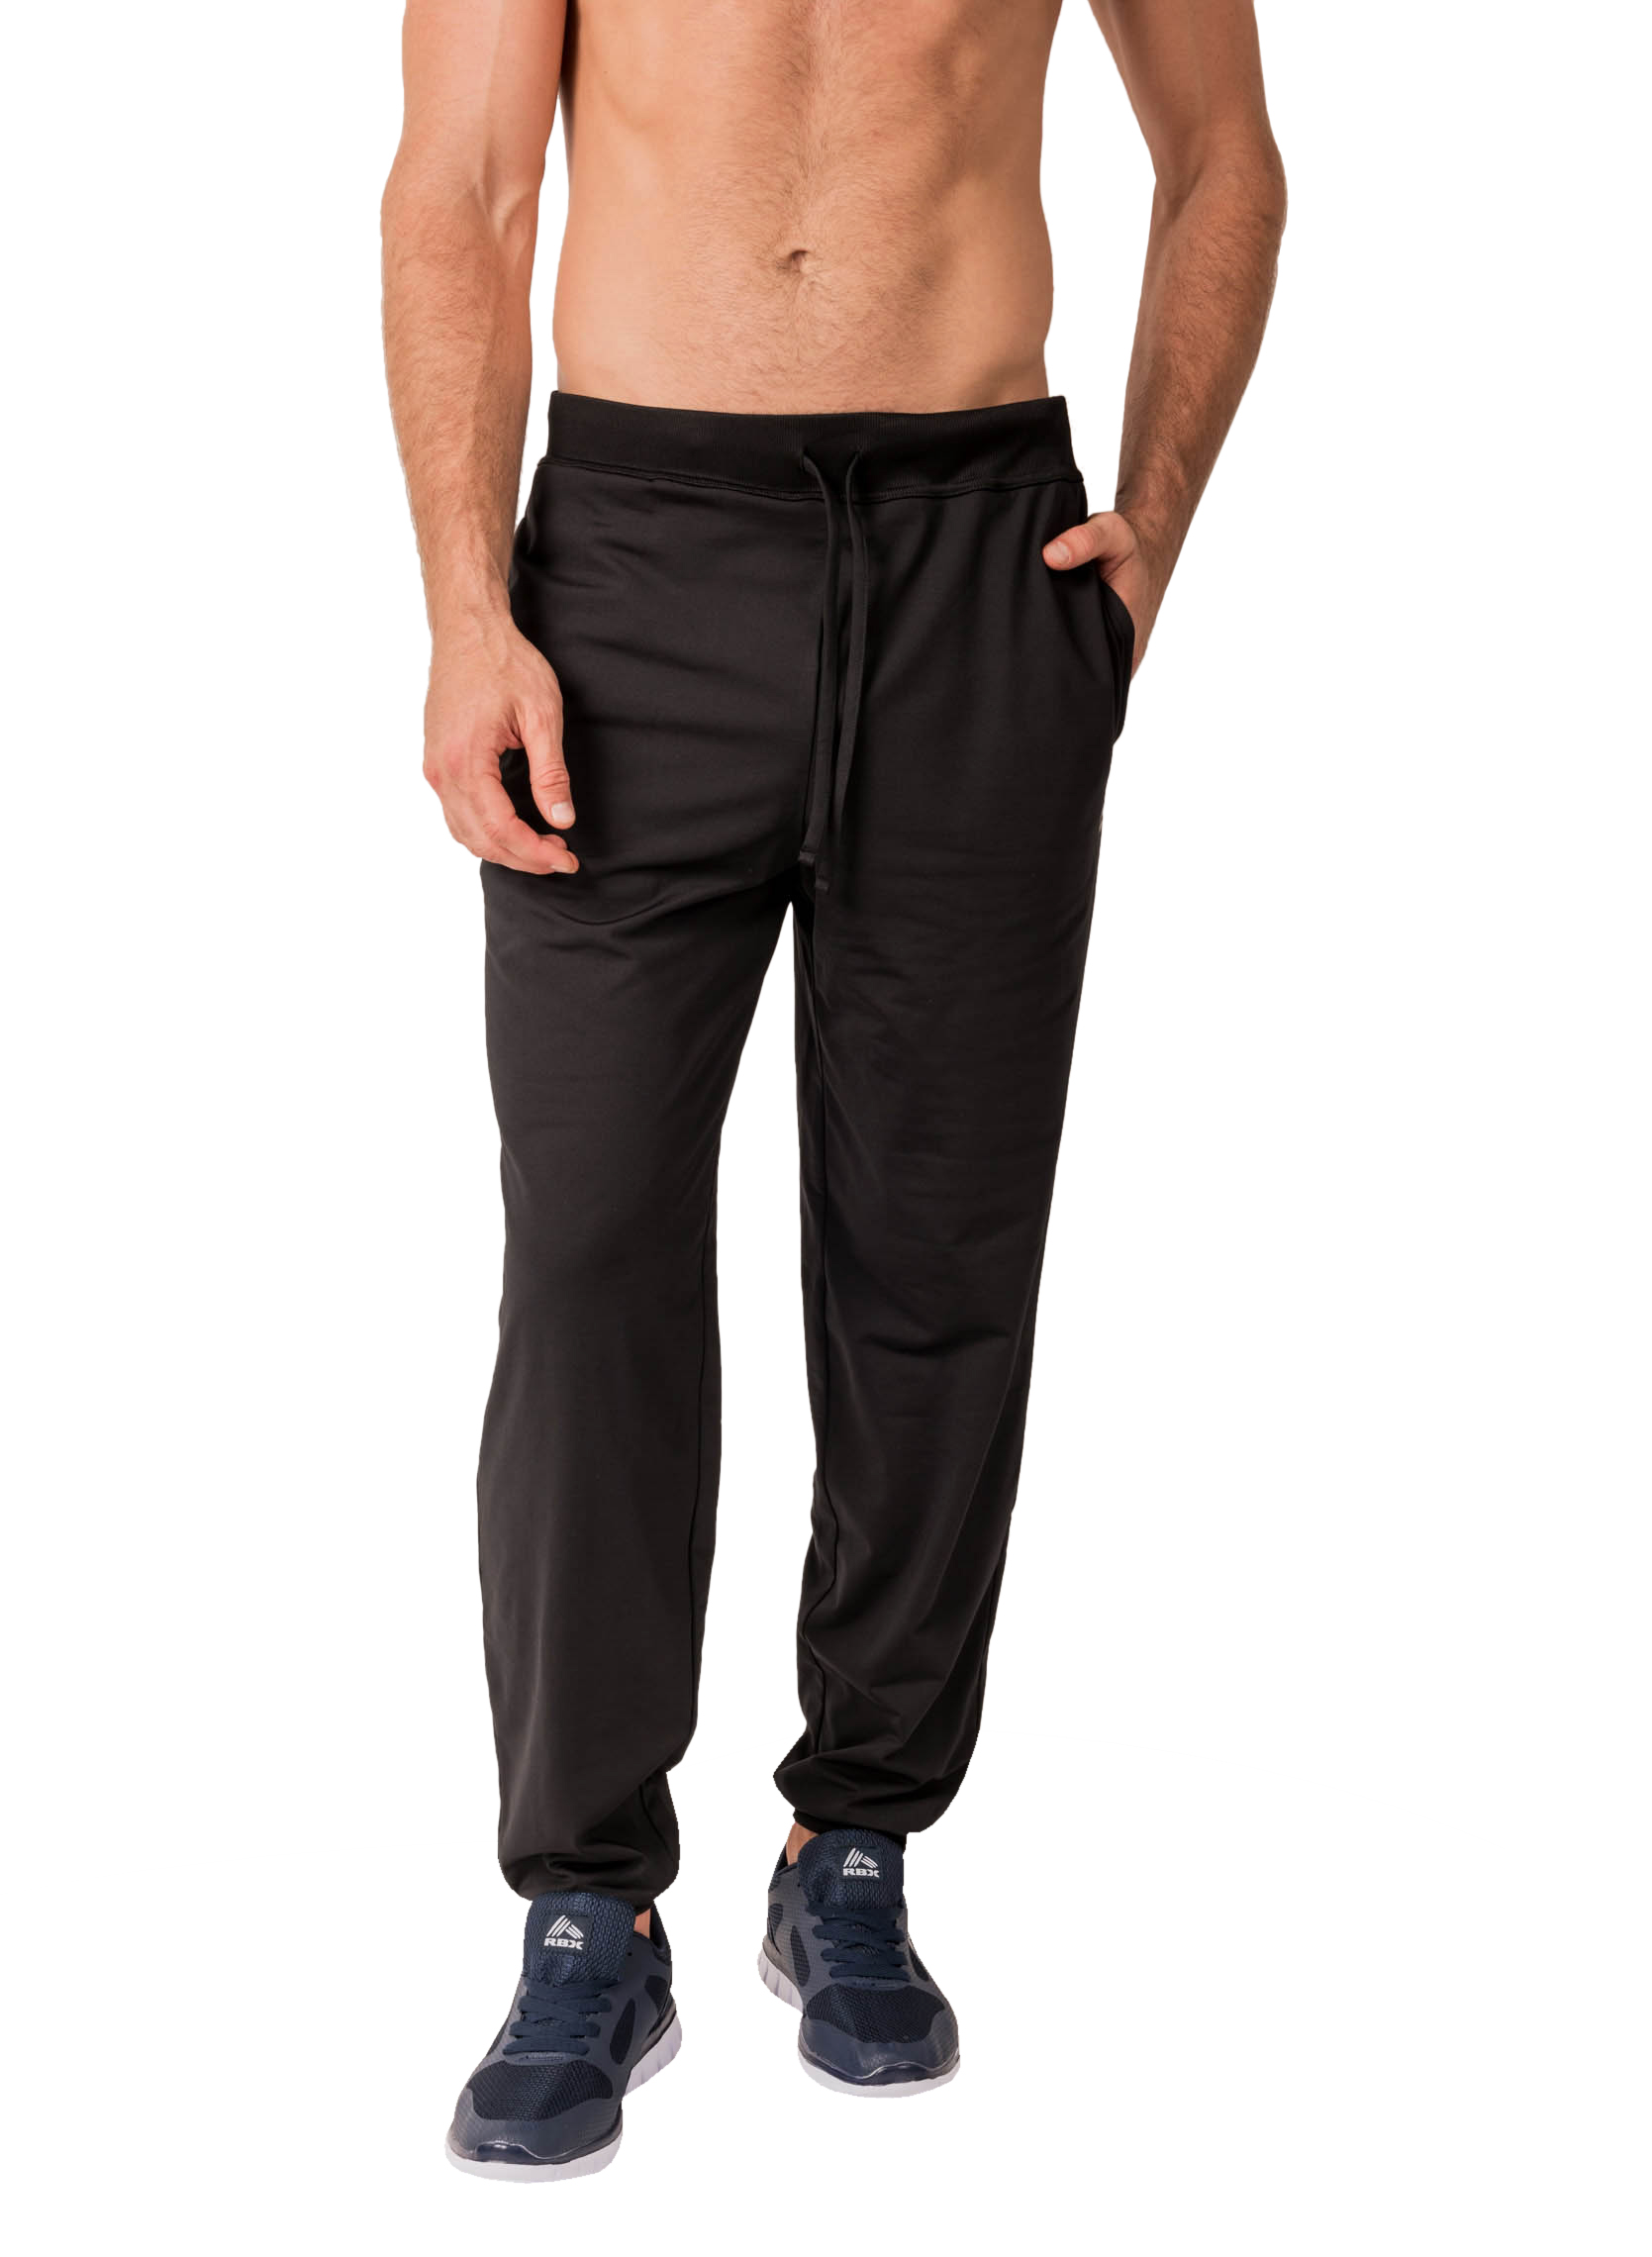 Casual Pants: Free Shipping on orders over $45 at fatalovely.cf - Your Online Casual Pants Store! Get 5% in rewards with Club O! Men Casual Sweatpants Camouflage Sports Trousers Drawstring Hip-hop Long Pants. SALE ends in 3 days. Quick View.